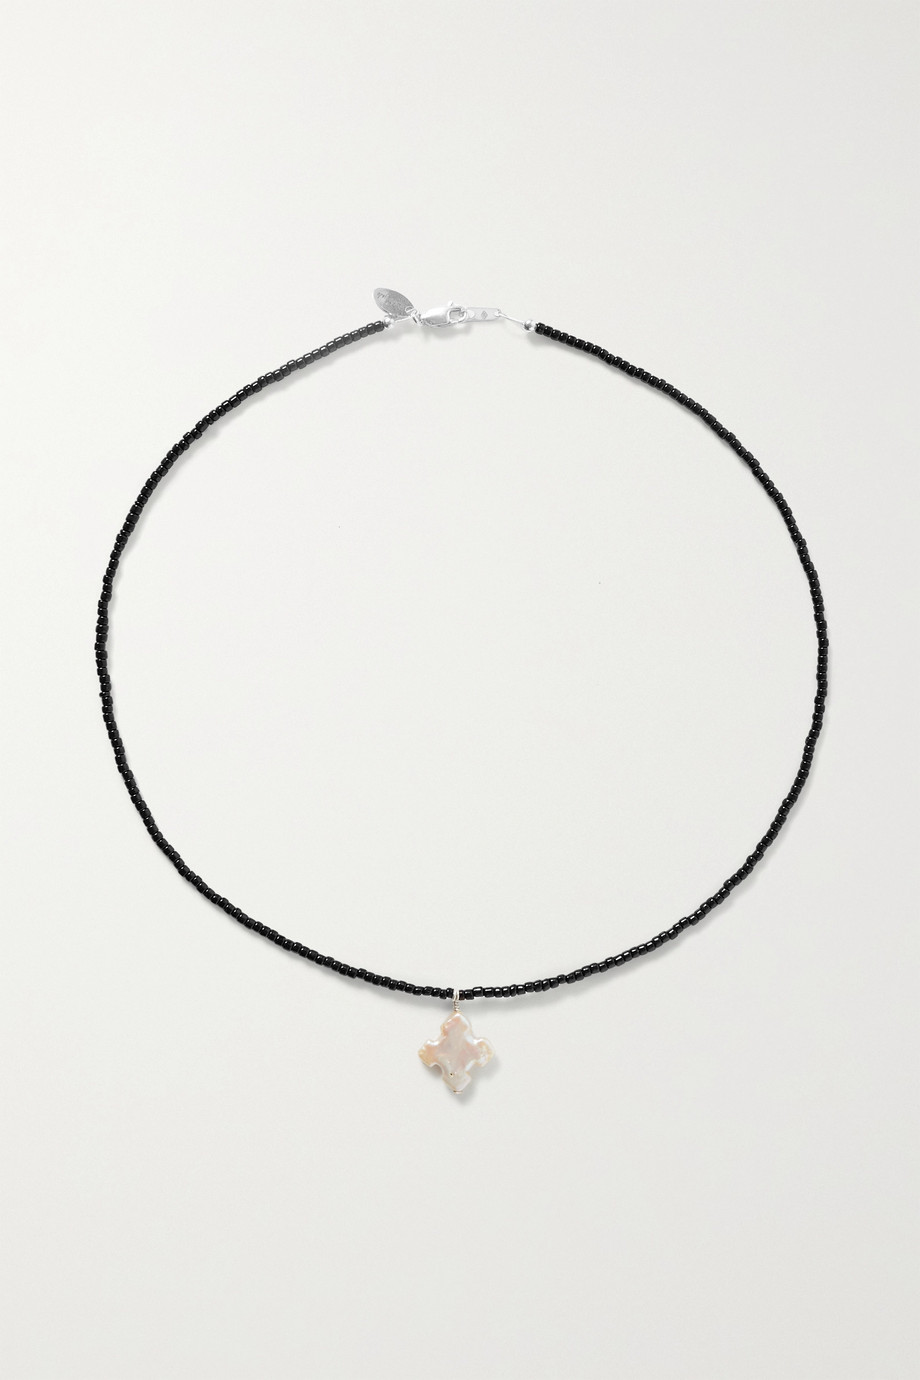 Santangelo Suma silver, pearl and bead necklace